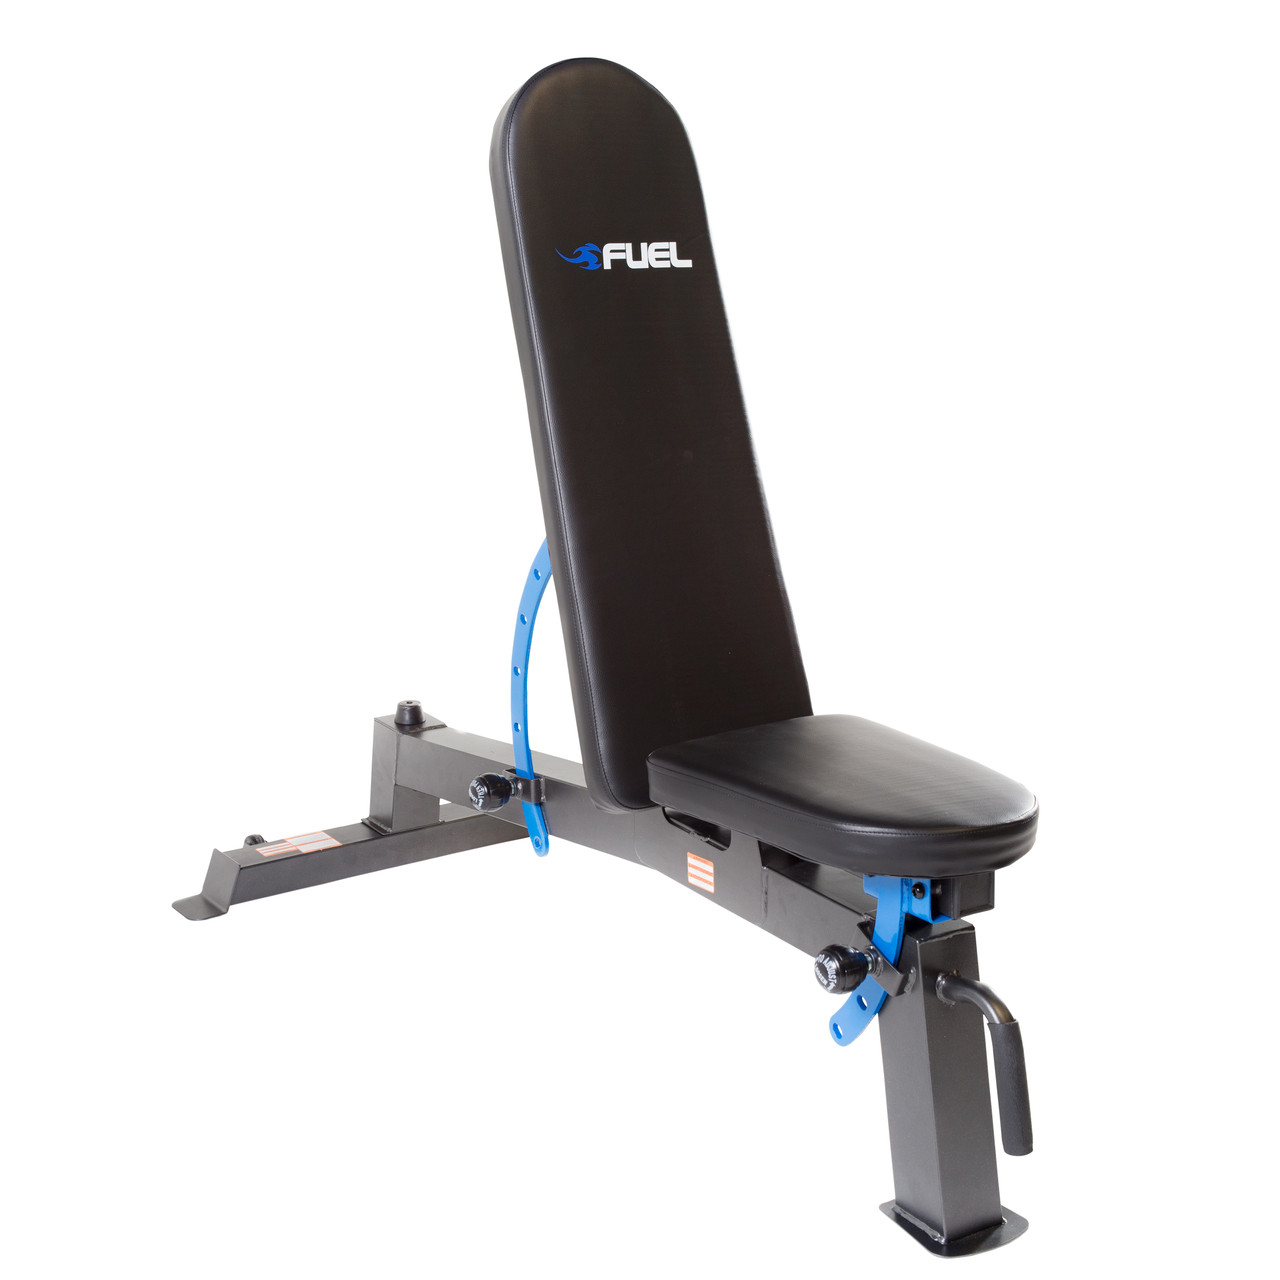 Cap Barbell Flat Incline Decline Weight Bench Fm 704: Fuel Pureformance Deluxe Utility Bench (FM-FL704DX